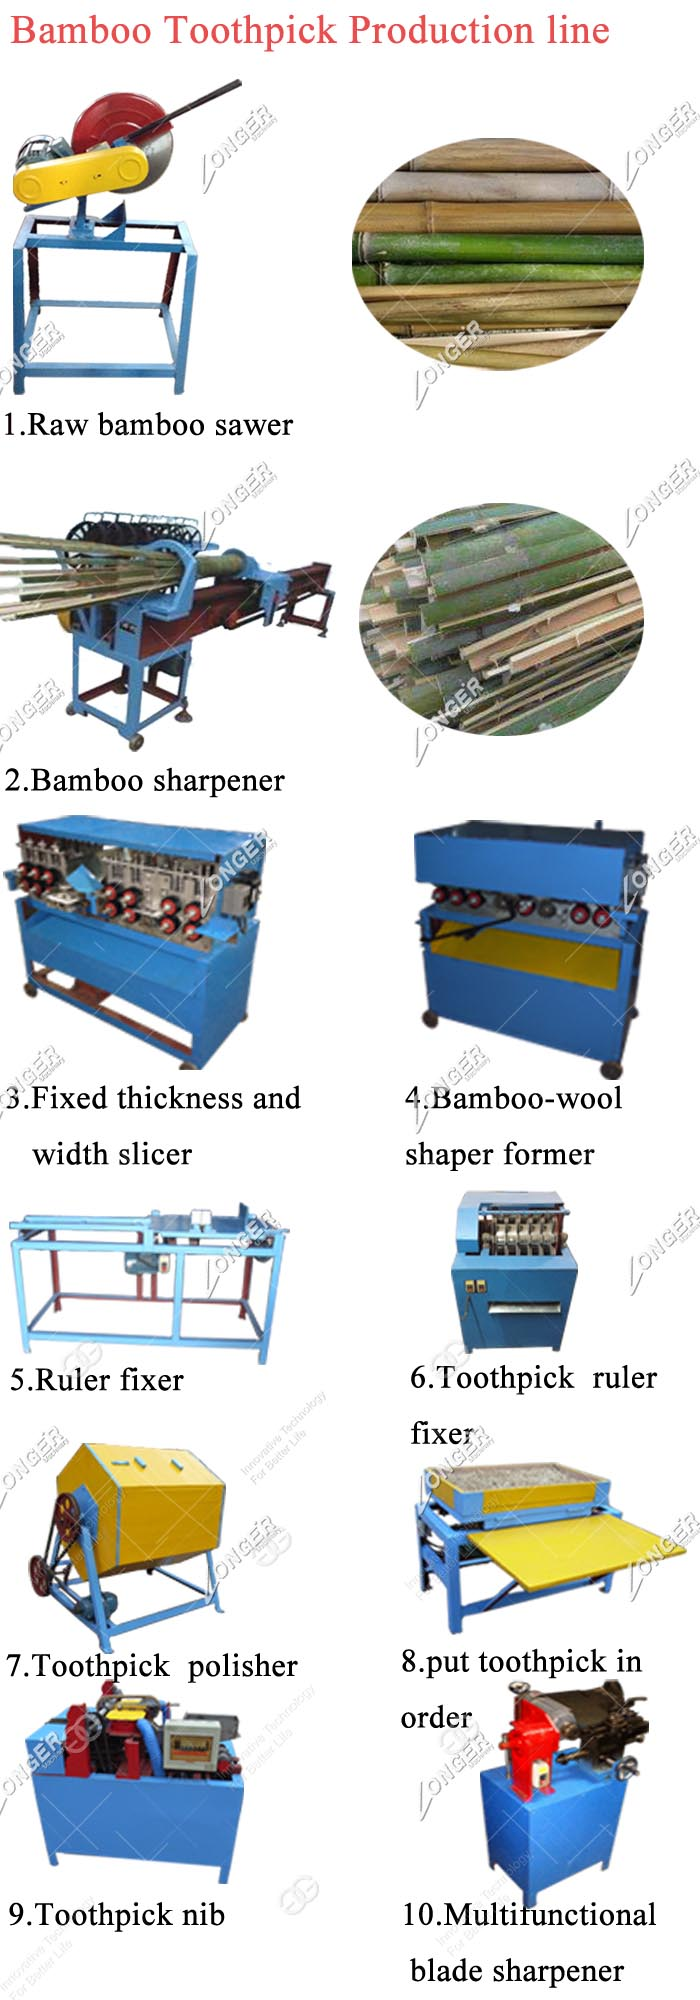 Small Scale Good Performance Incense Bbq Stick Maker Machine Making Equipment Bamboo Toothpick Production Machinery